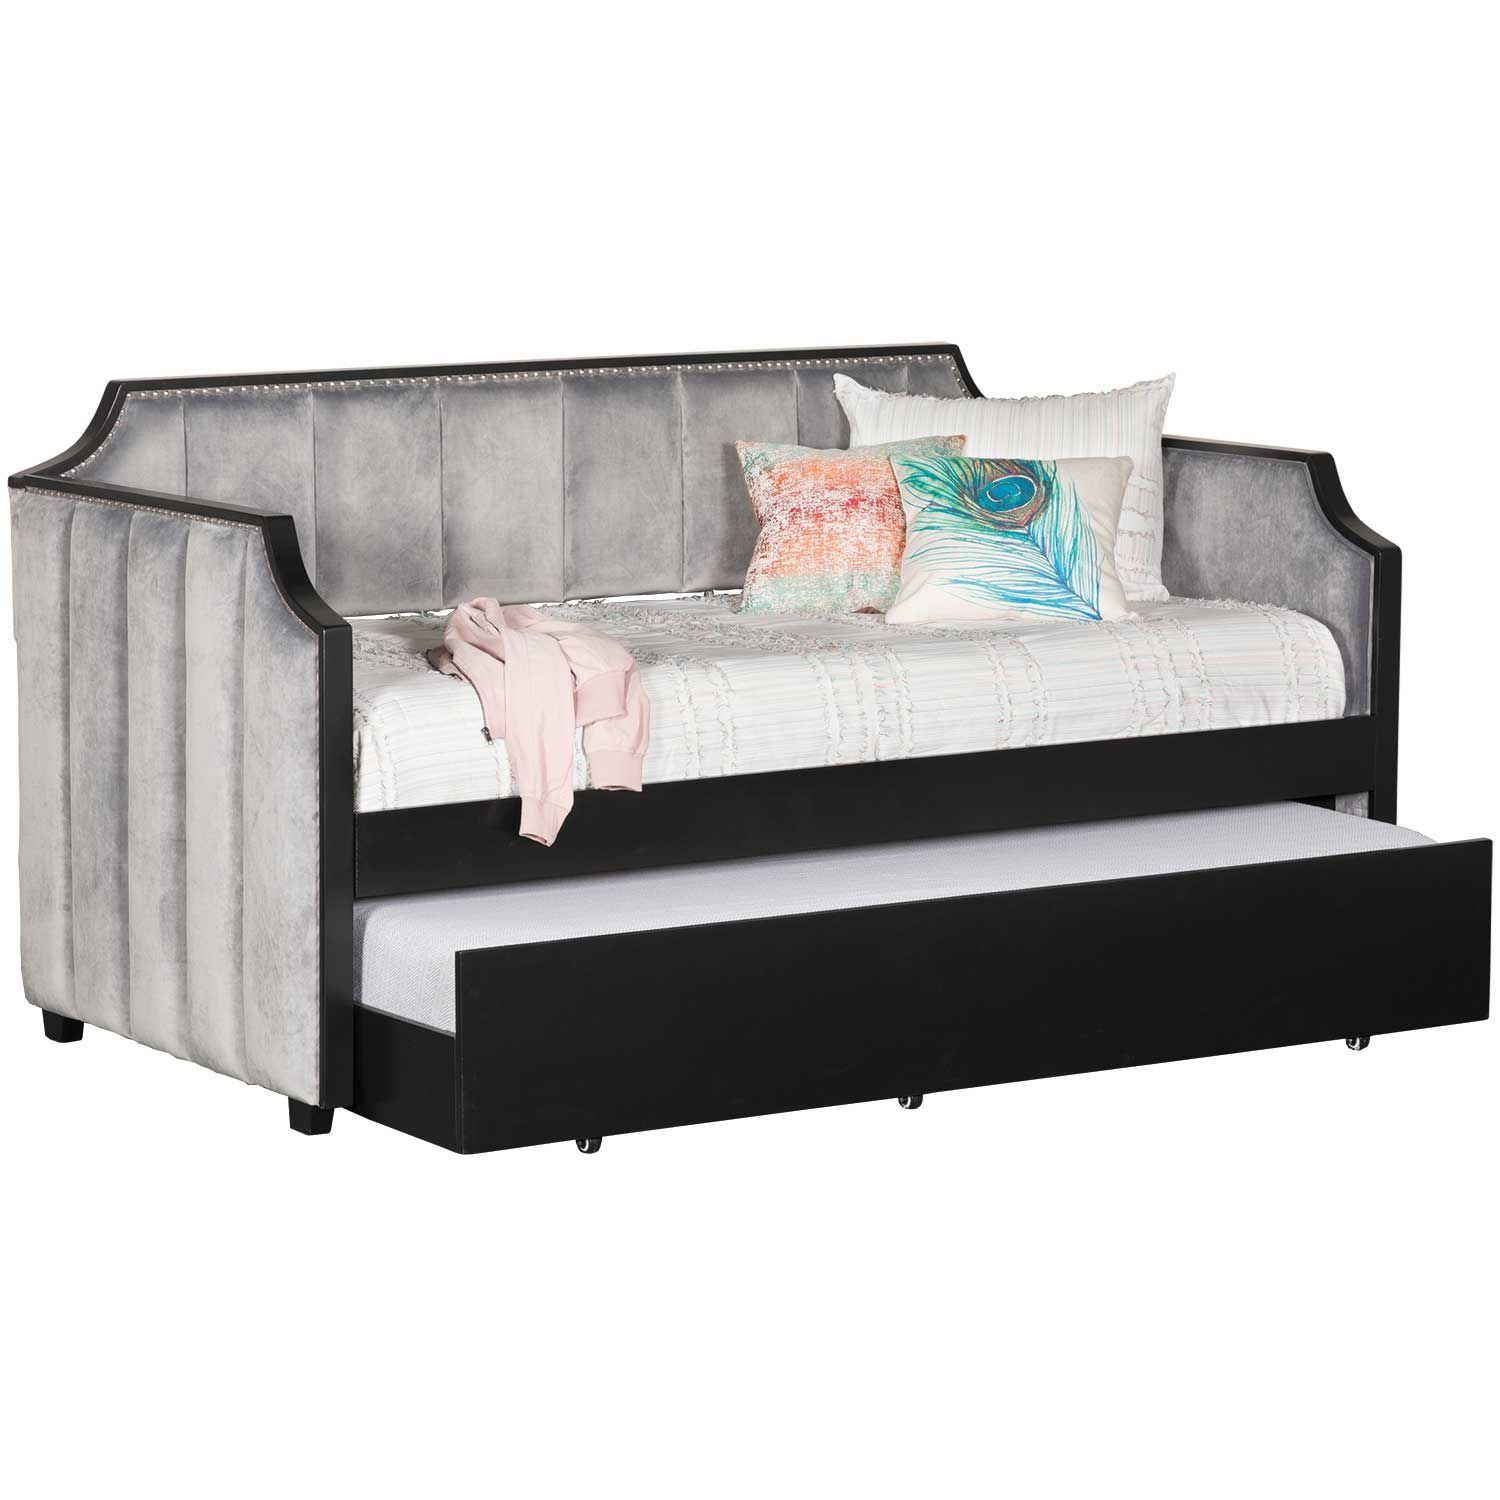 Picture of Upholstered Grey Velvet Day Bed with Trundle